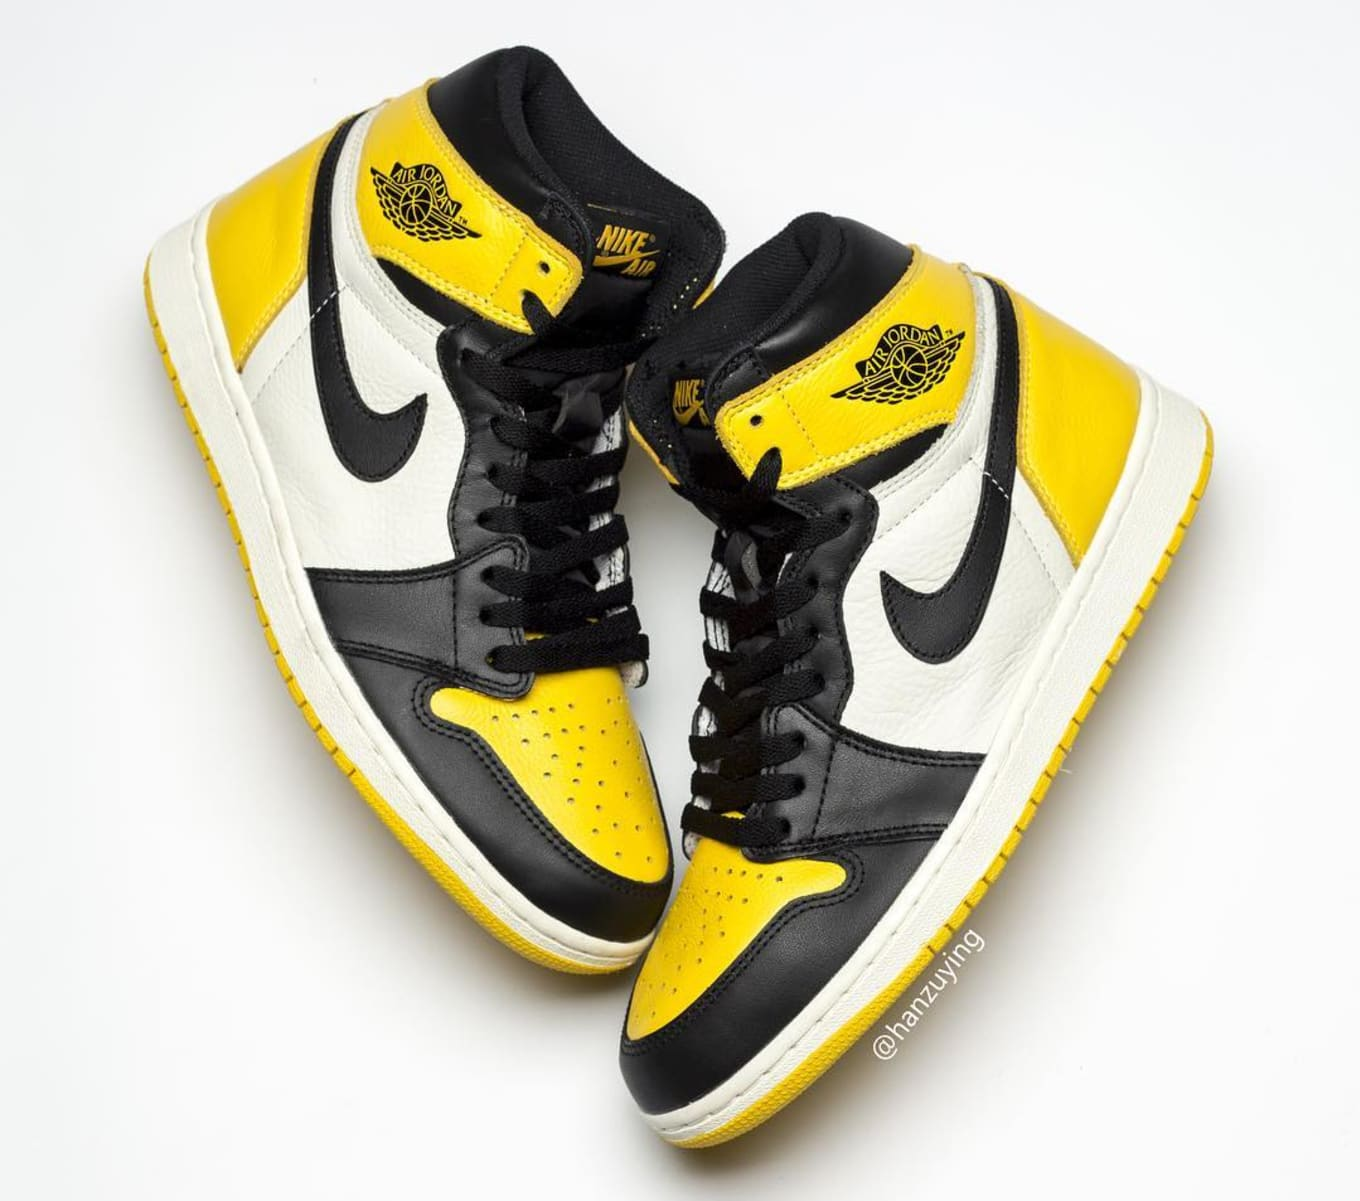 9f35dd9b10d0c6 Air Jordan 1 Retro High OG  Yellow Toe  Release Date AR1020-700 ...